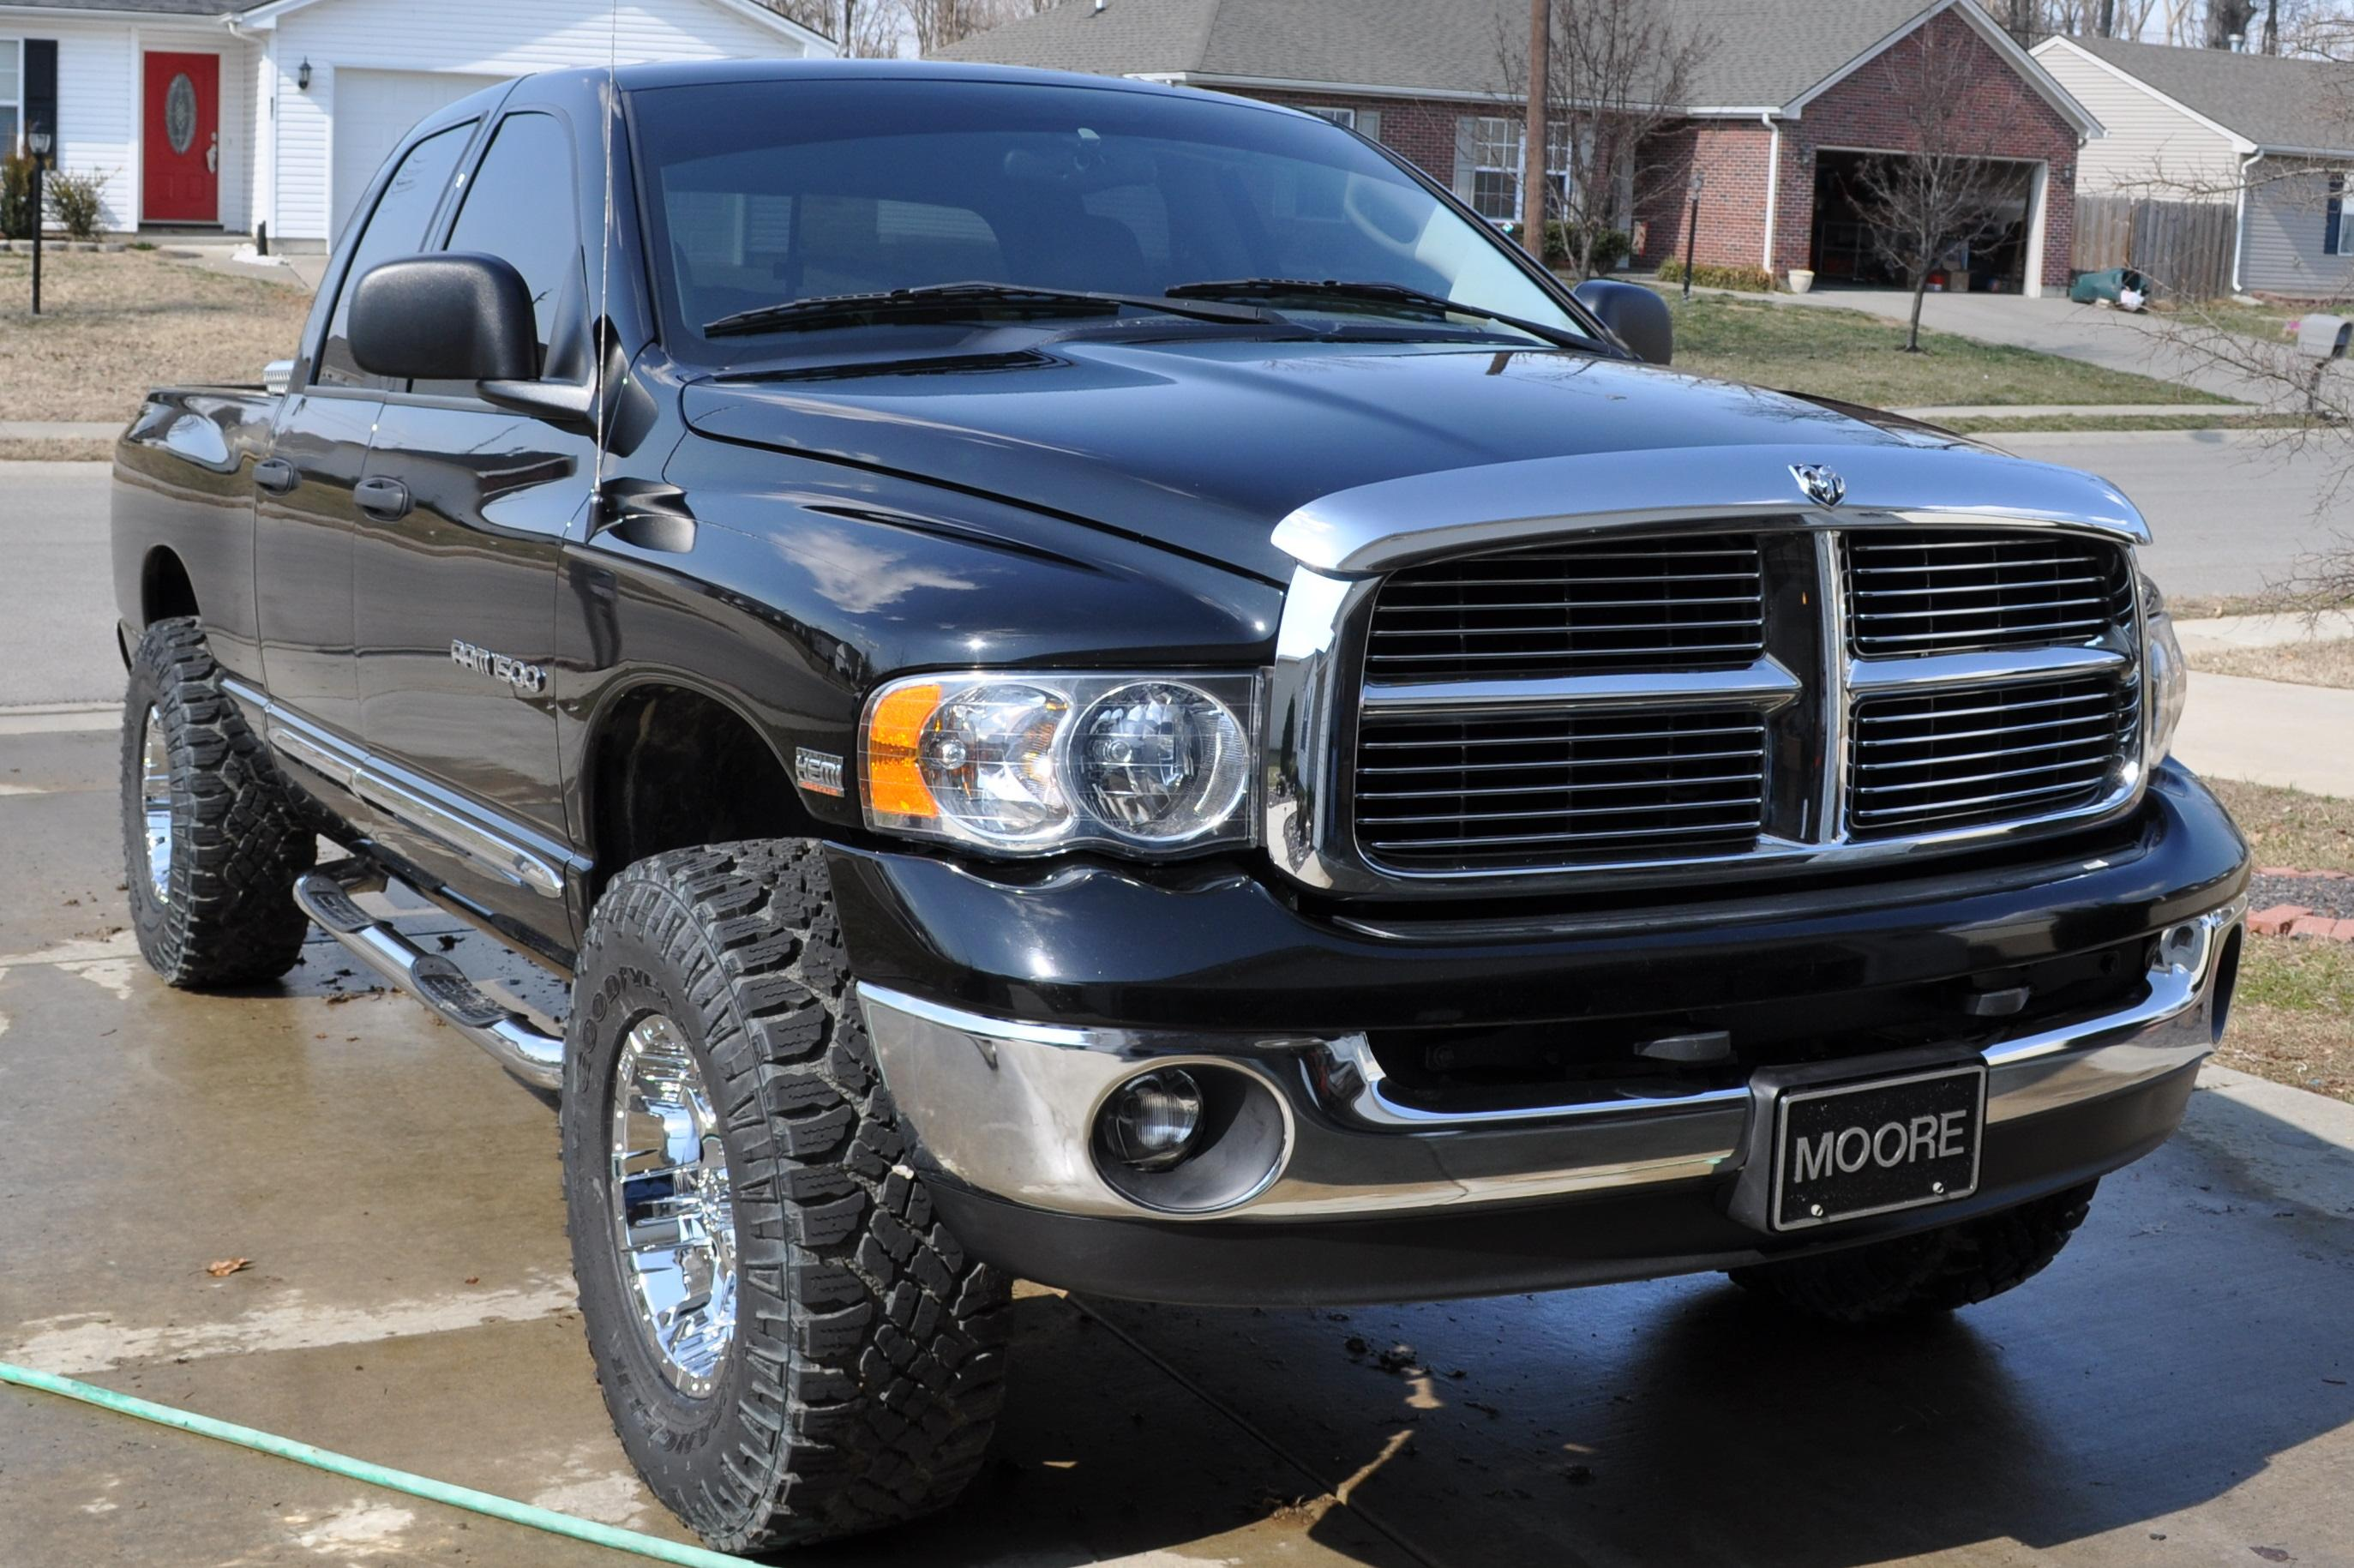 typicalmale 2004 dodge ram 1500 quad cab specs photos modification info at cardomain. Black Bedroom Furniture Sets. Home Design Ideas